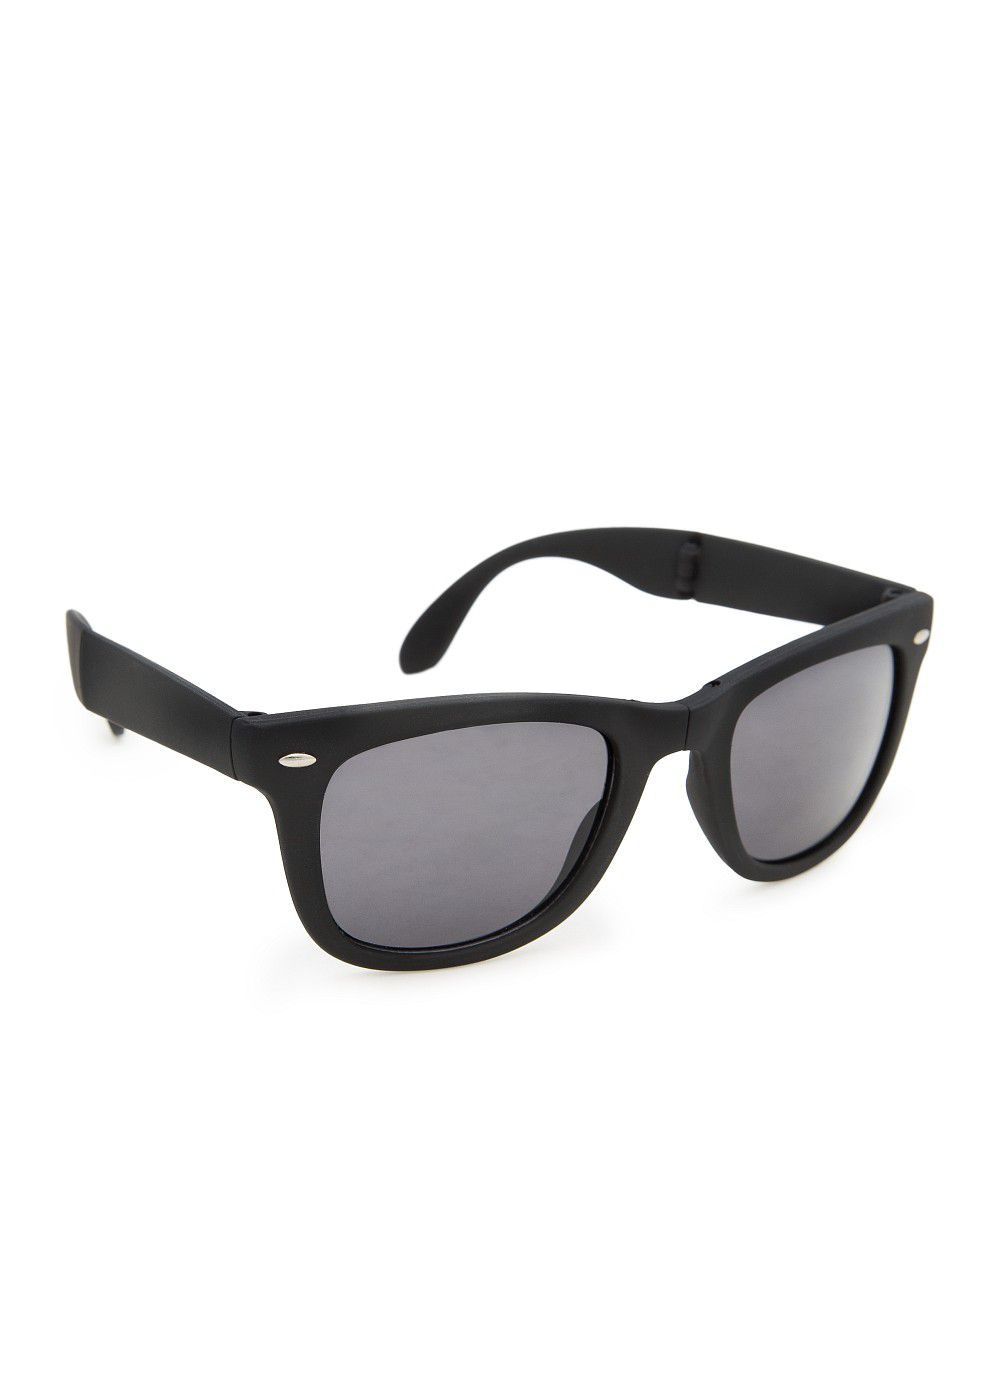 Foldable matte sunglasses